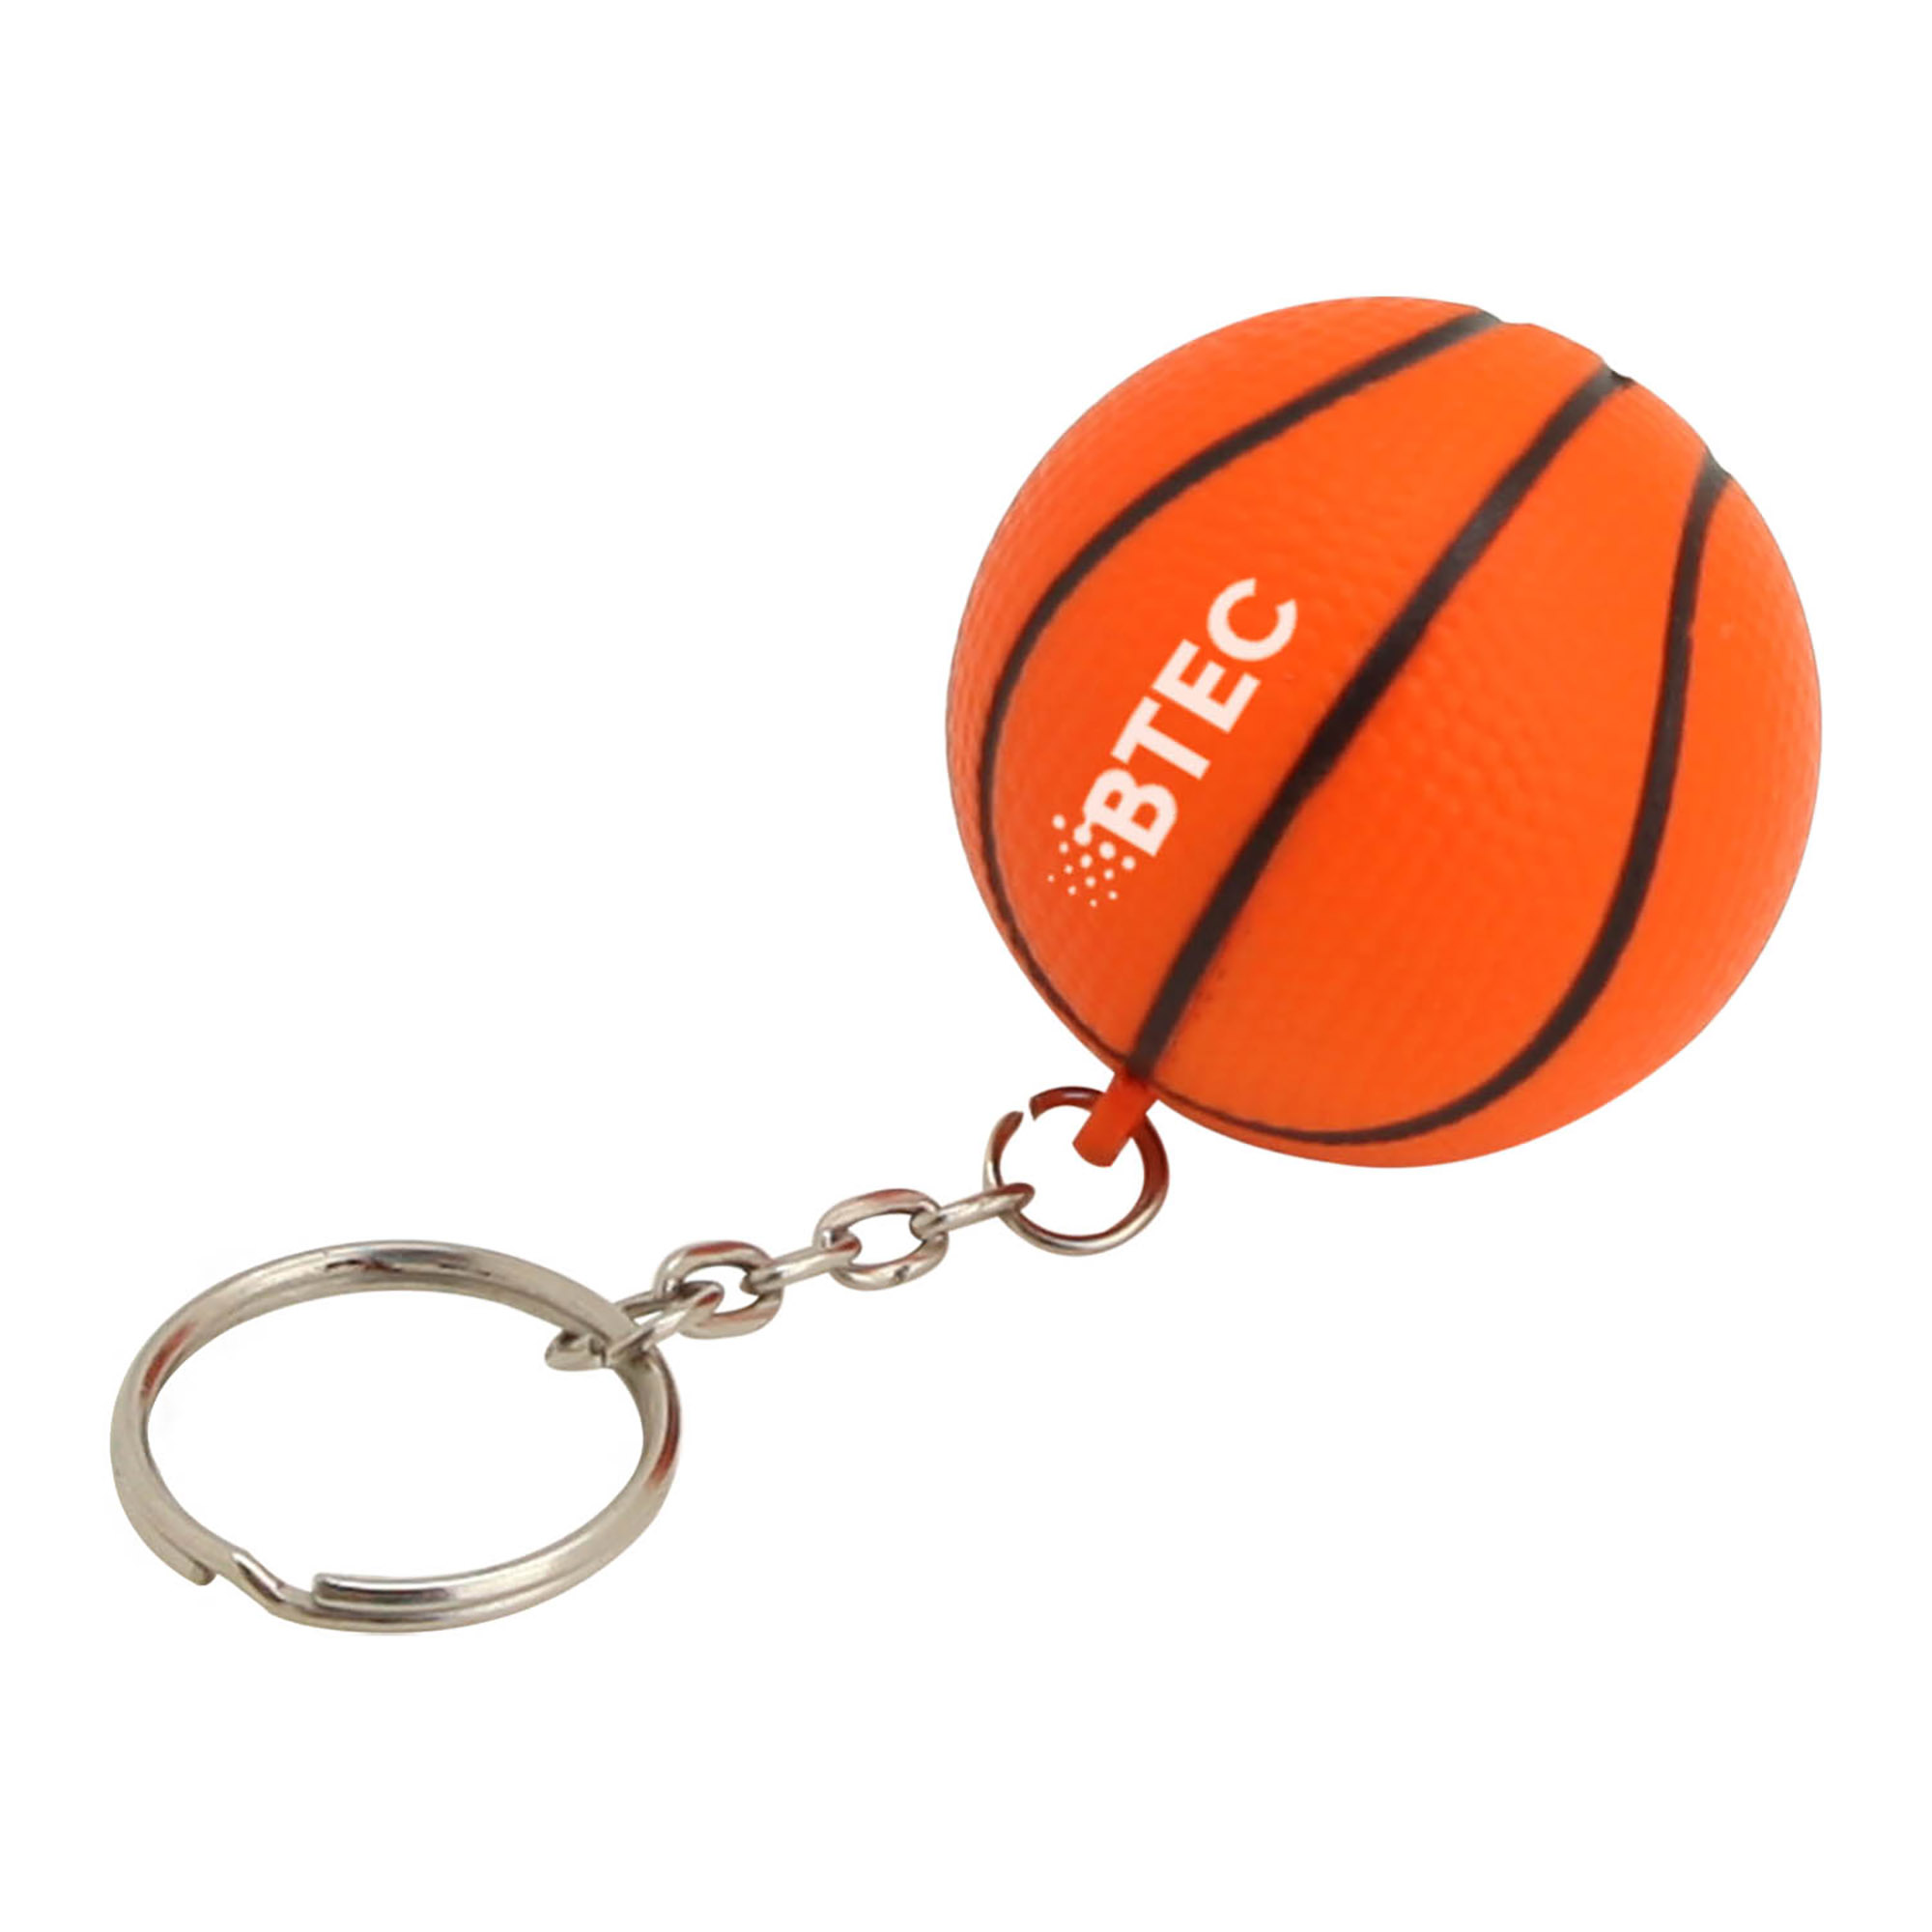 STRESS BASKETBALL KEYRING - 1 Colour Print, From $0.59